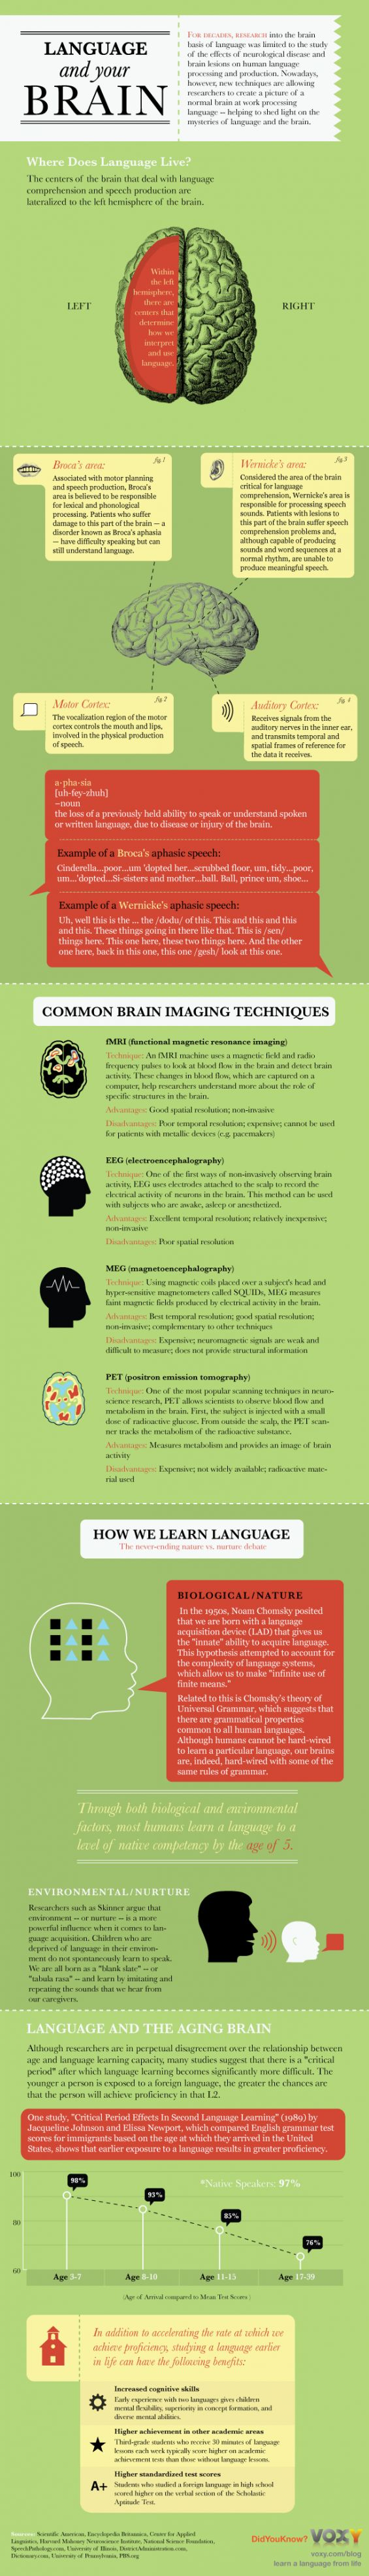 The brain and learning languages